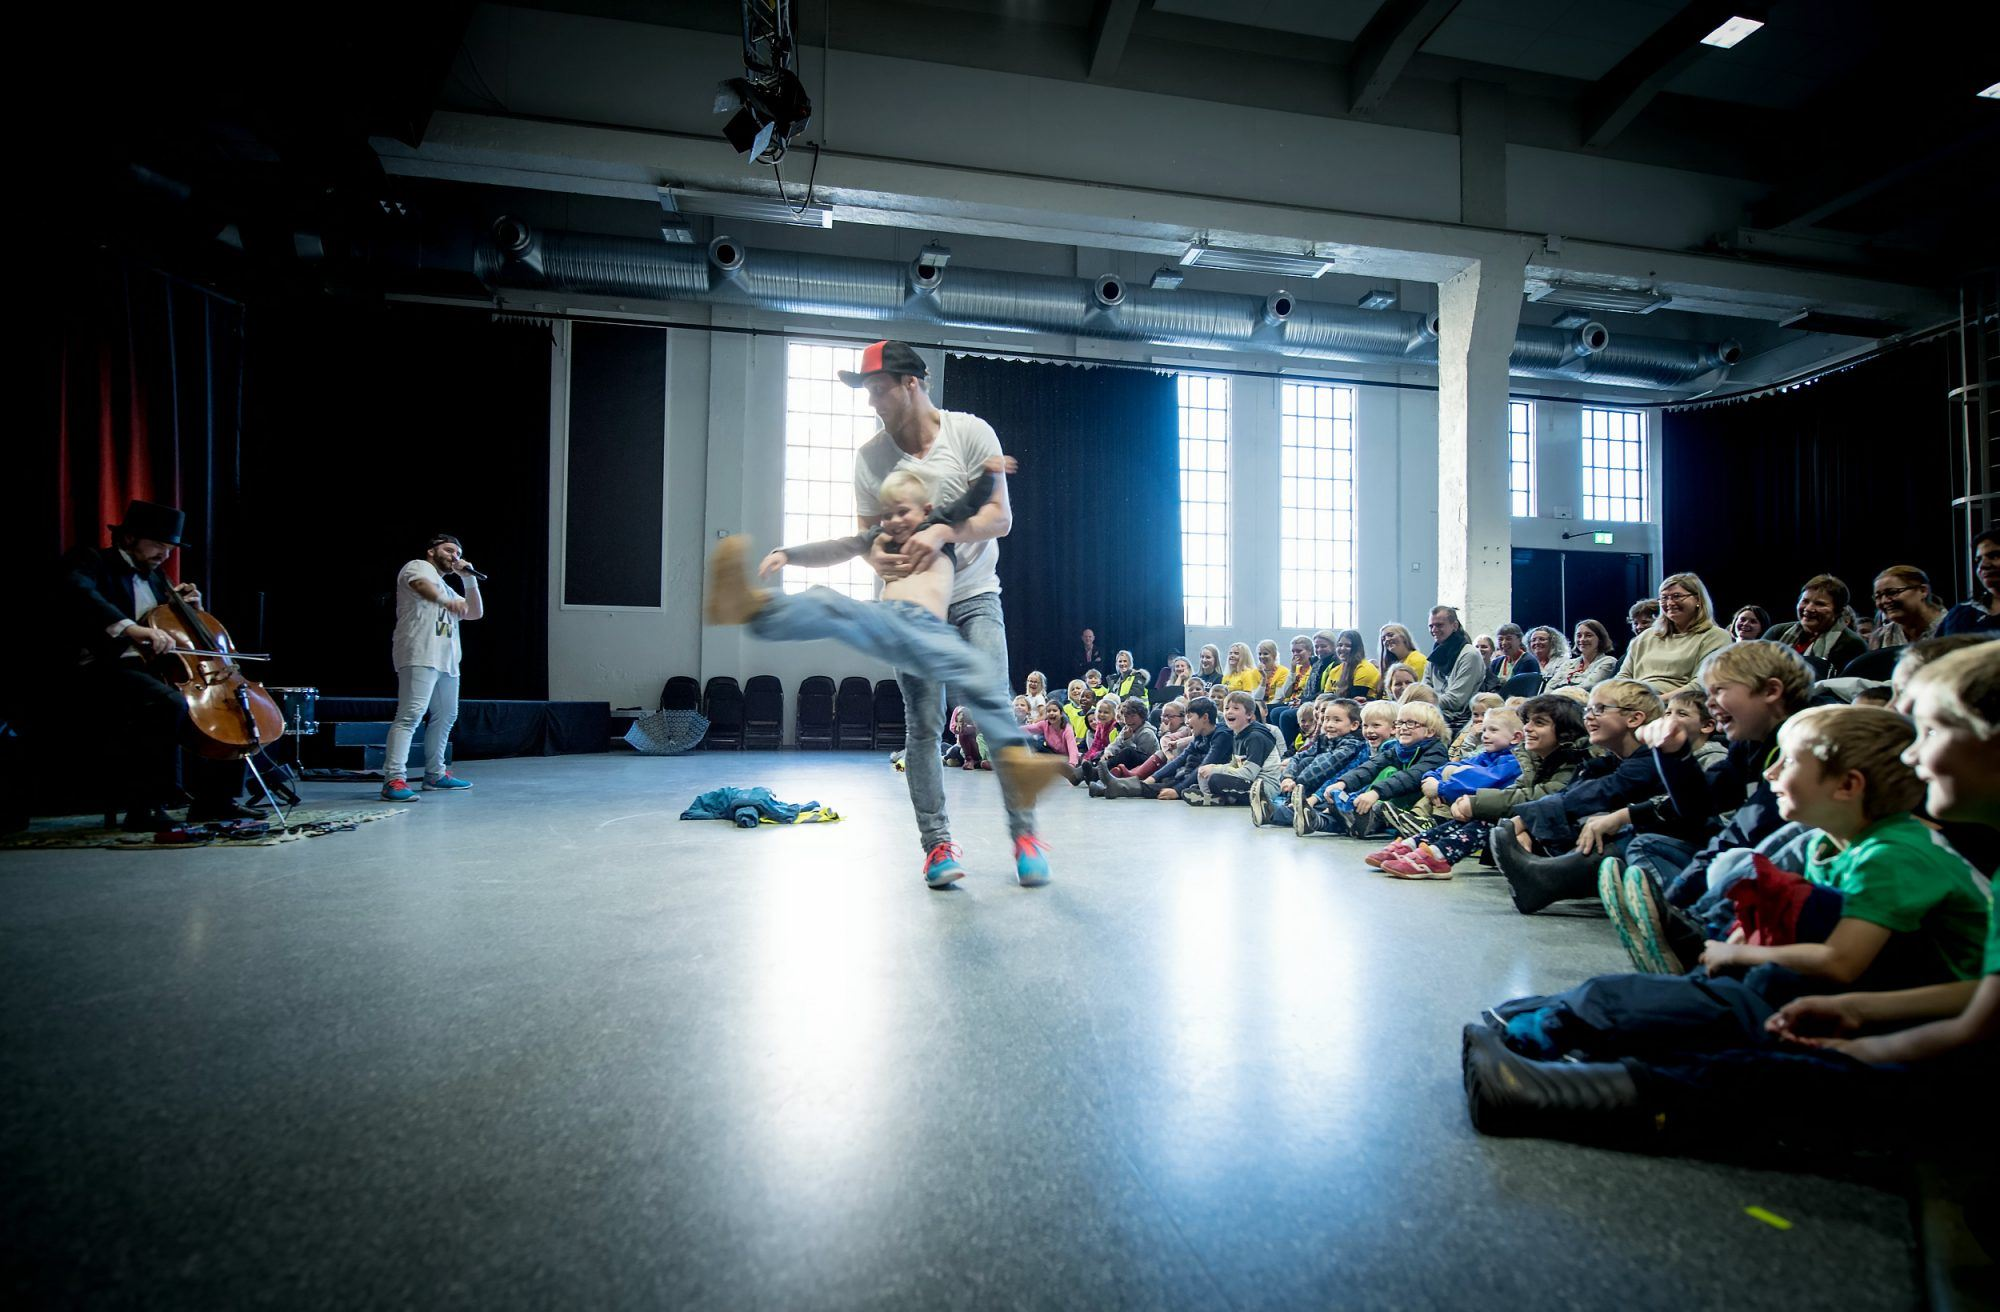 Danseshow - Bach goes hiphop